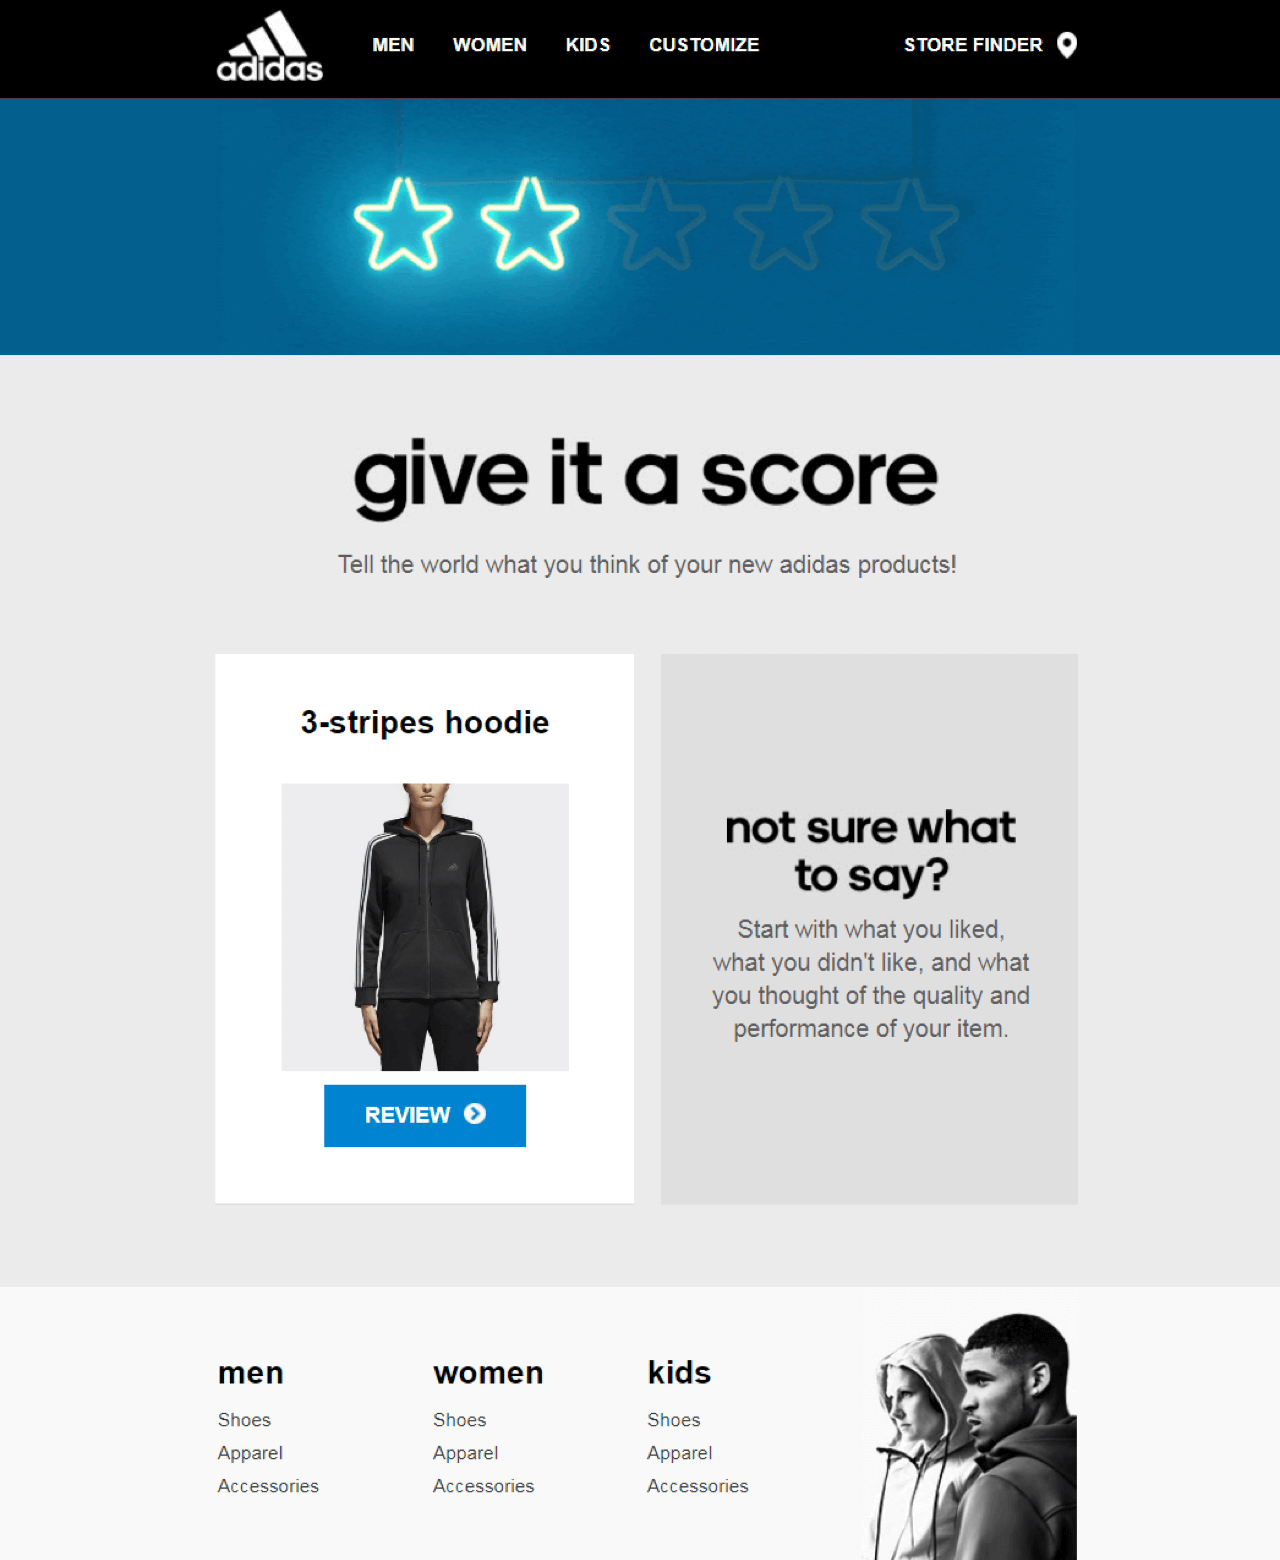 Example of a post-purchase evaluation survey delivered via email by Adidas